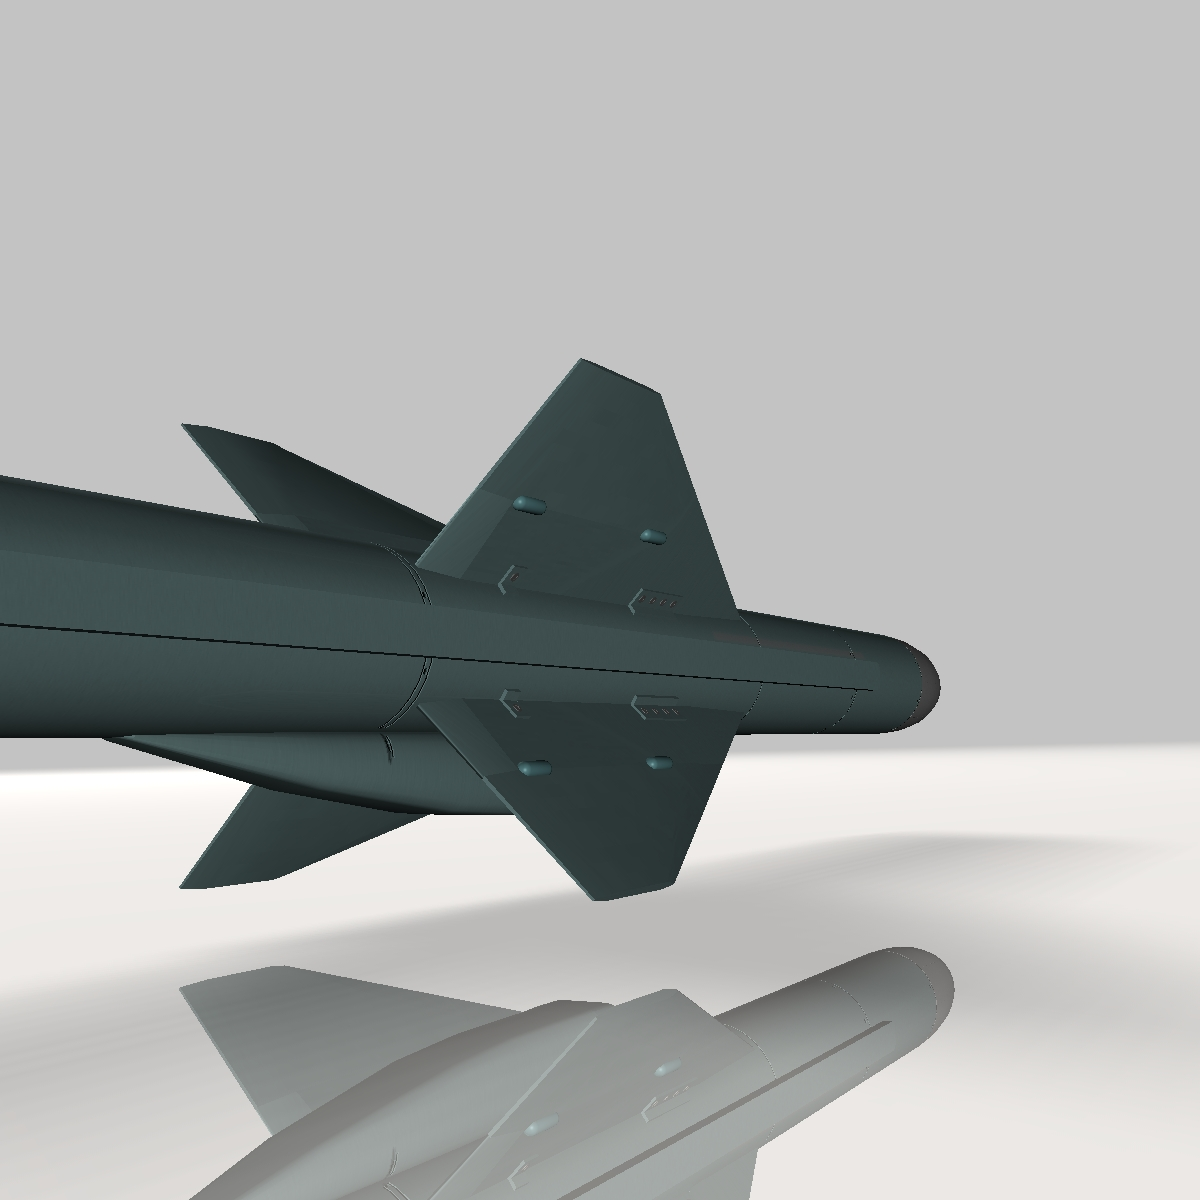 iranian noor cruise missile 3d model 3ds dxf x cod scn obj 149369